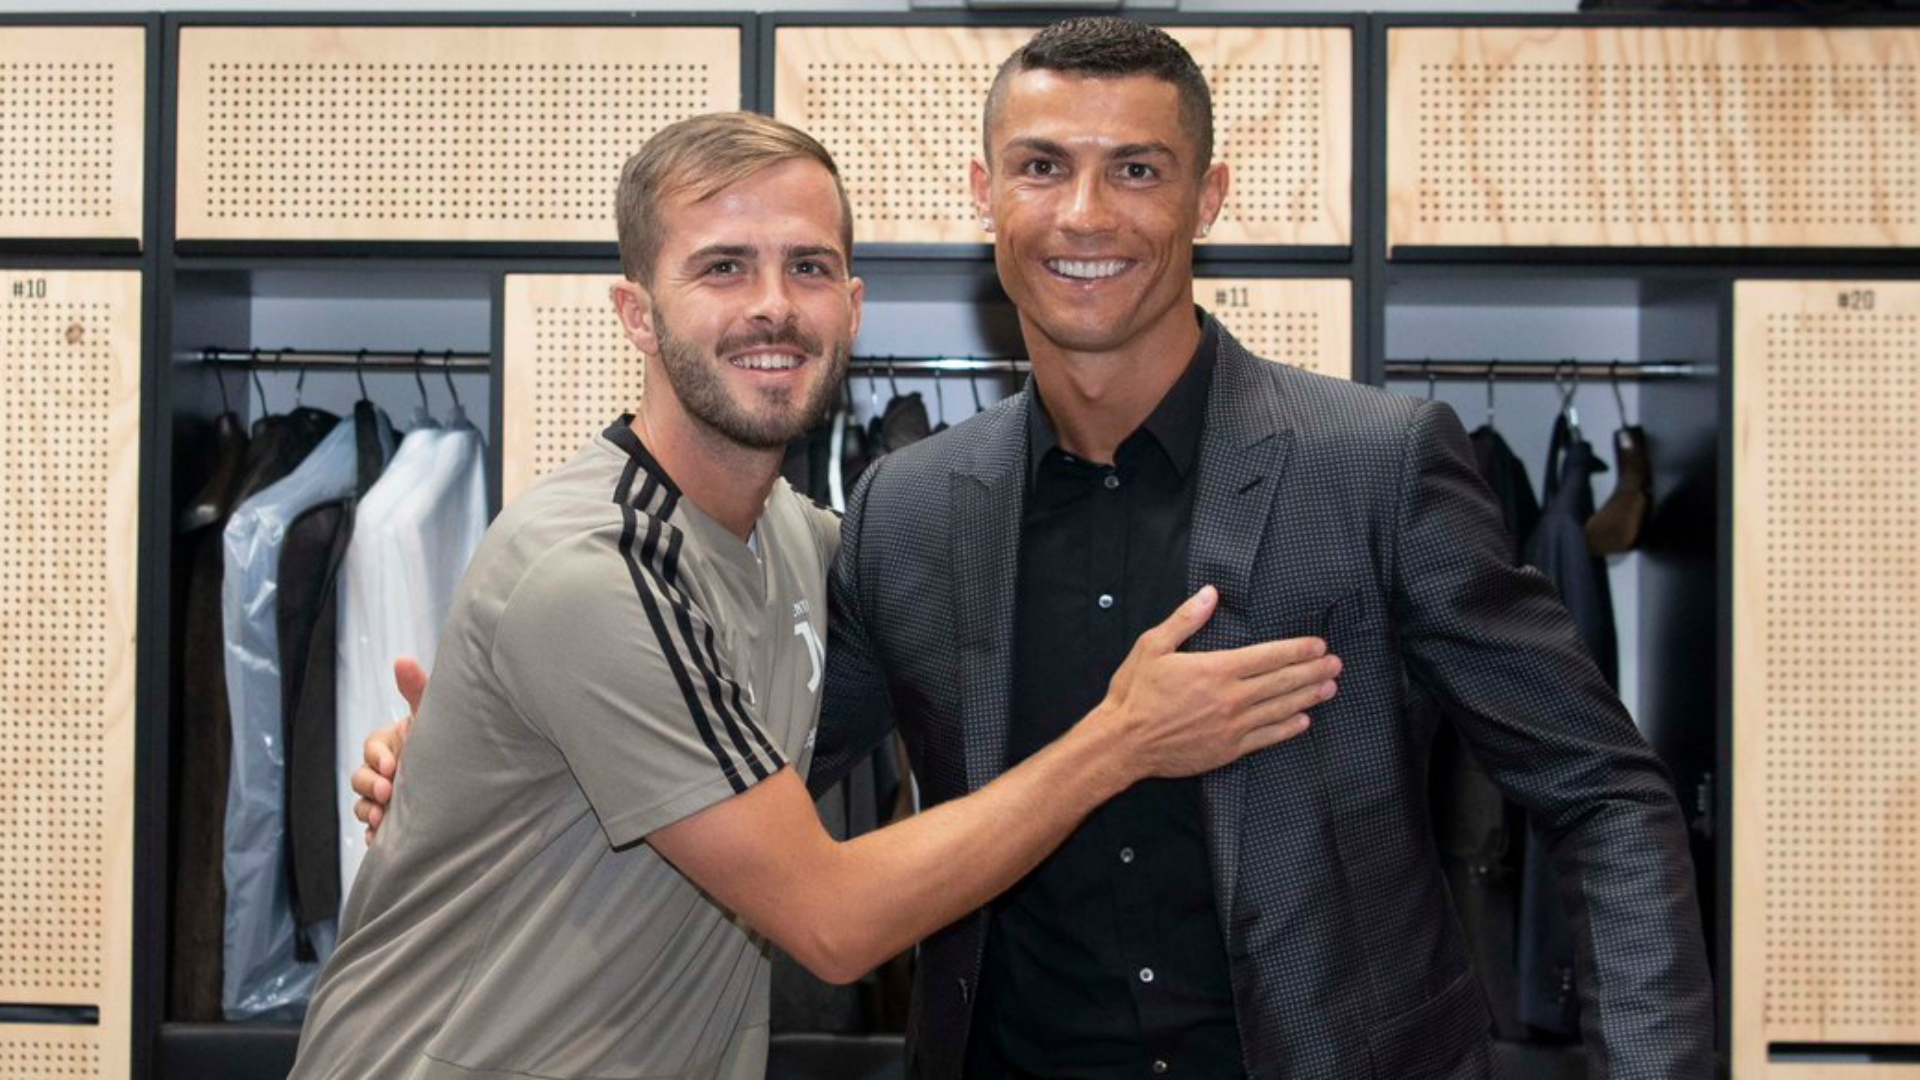 Pjanic and Ronaldo - Juventus